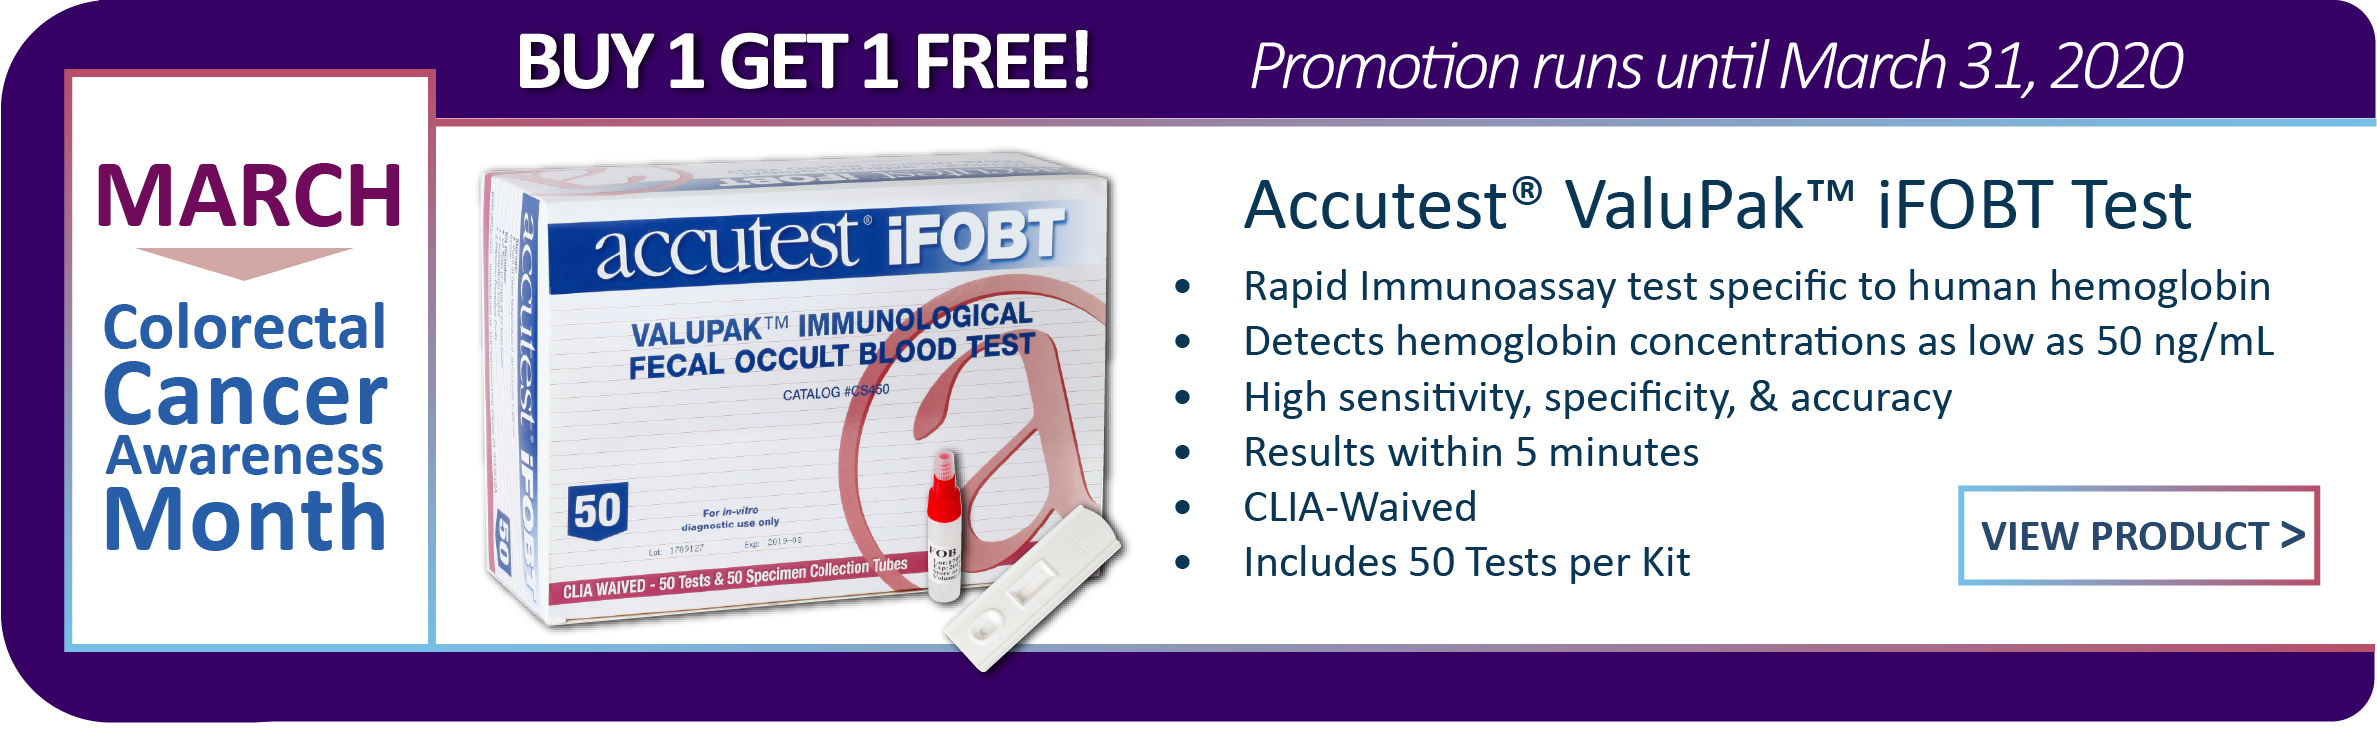 Buy One Get One iFOB Test Promo